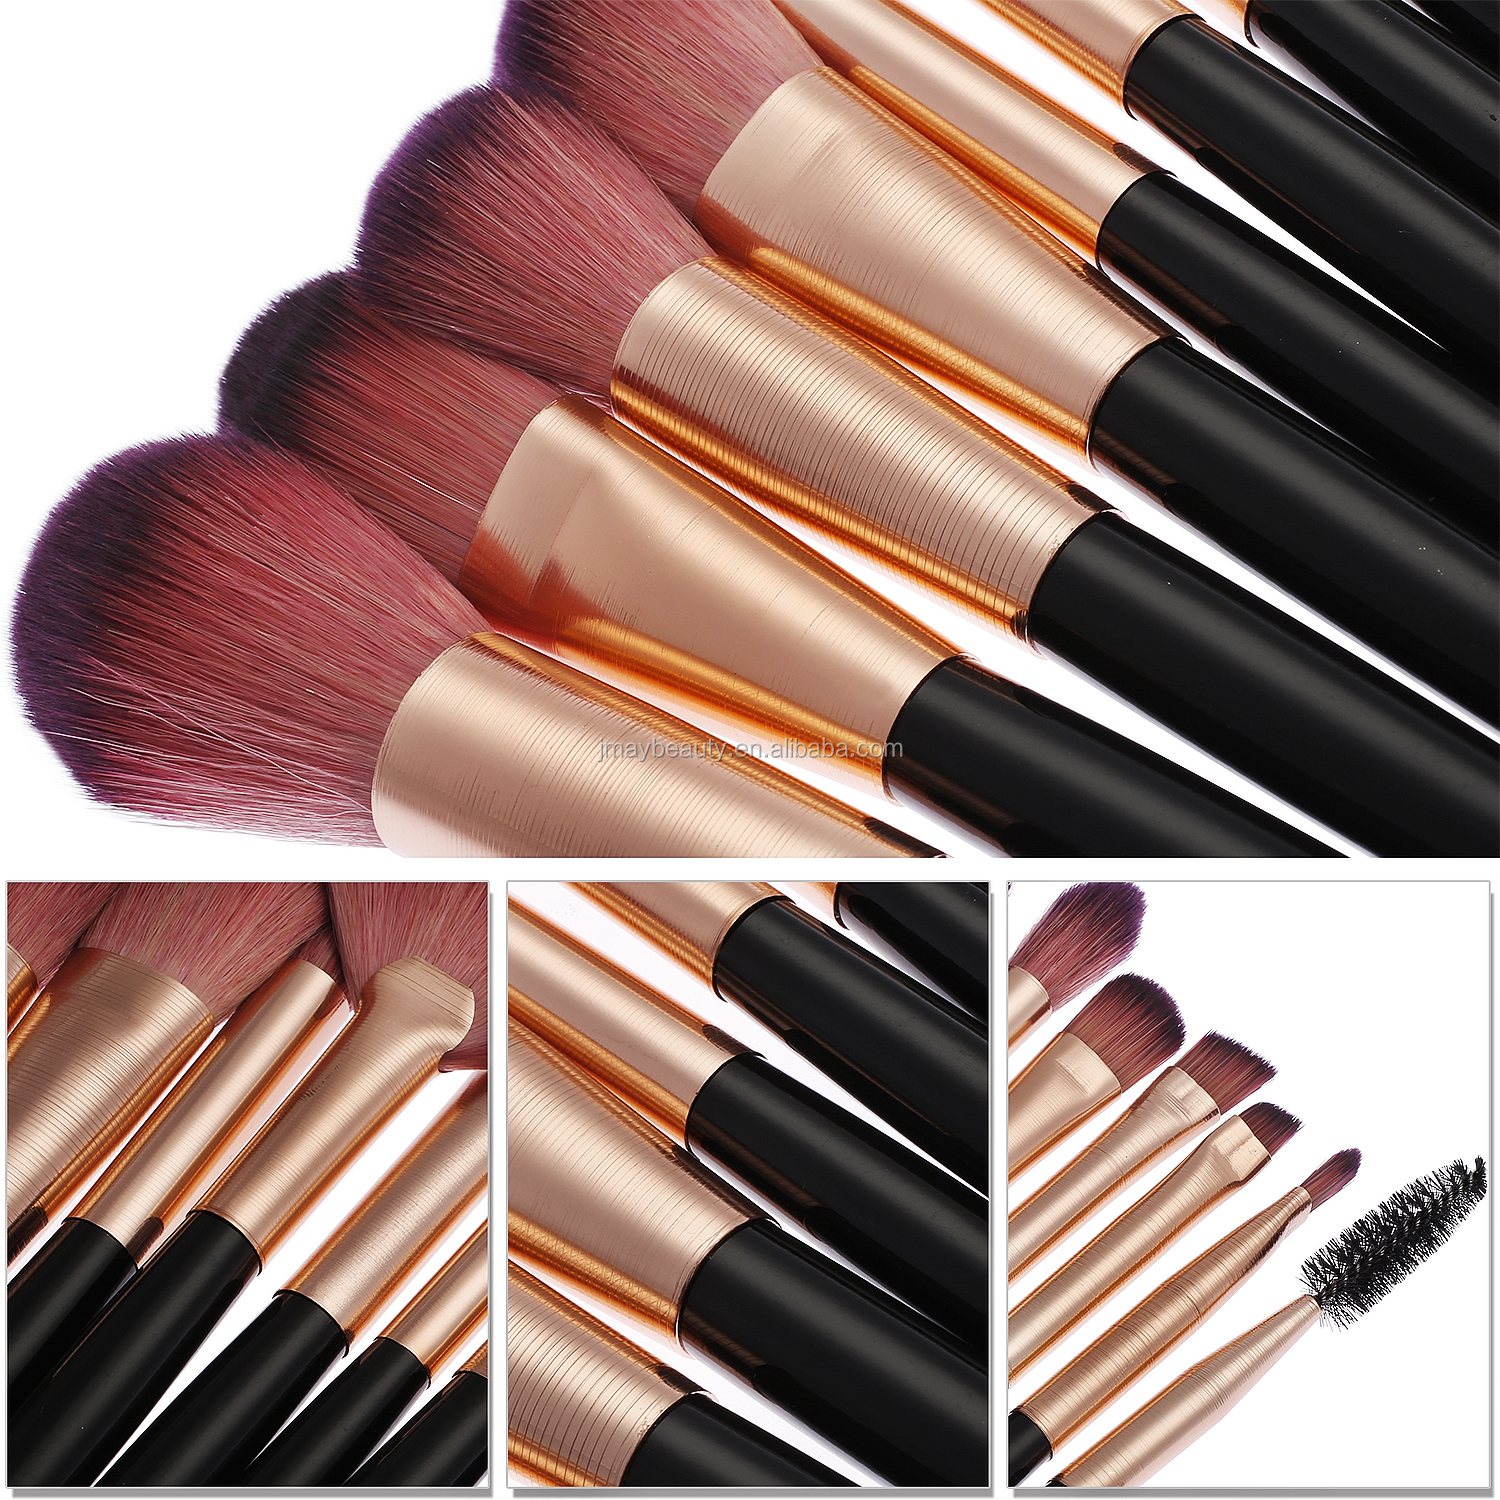 988cf16eec45 Luxury High End Makeup Brush Set Rose Gold Your Logo Professional Makeup  Kits Synthetic Hair Makeup Blush Brush Oem Custom 14pcs - Buy Rose Gold ...